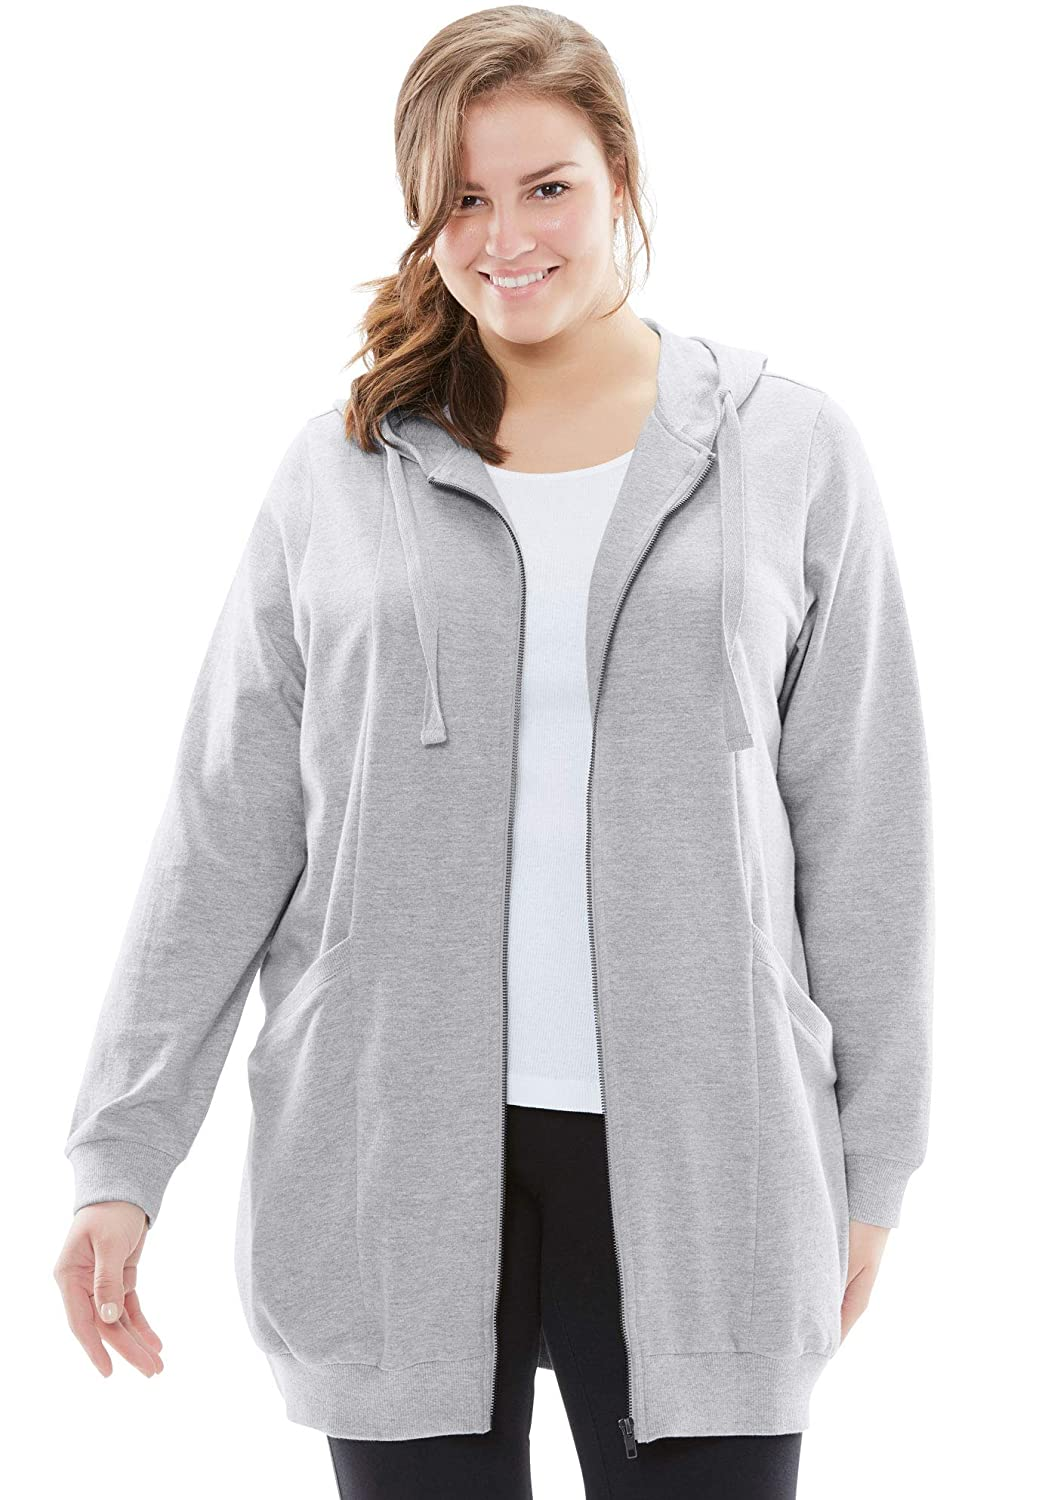 ee89af1d803 Woman Within Women's Plus Size Zip Front Tunic Hoodie at Amazon Women's  Clothing store: